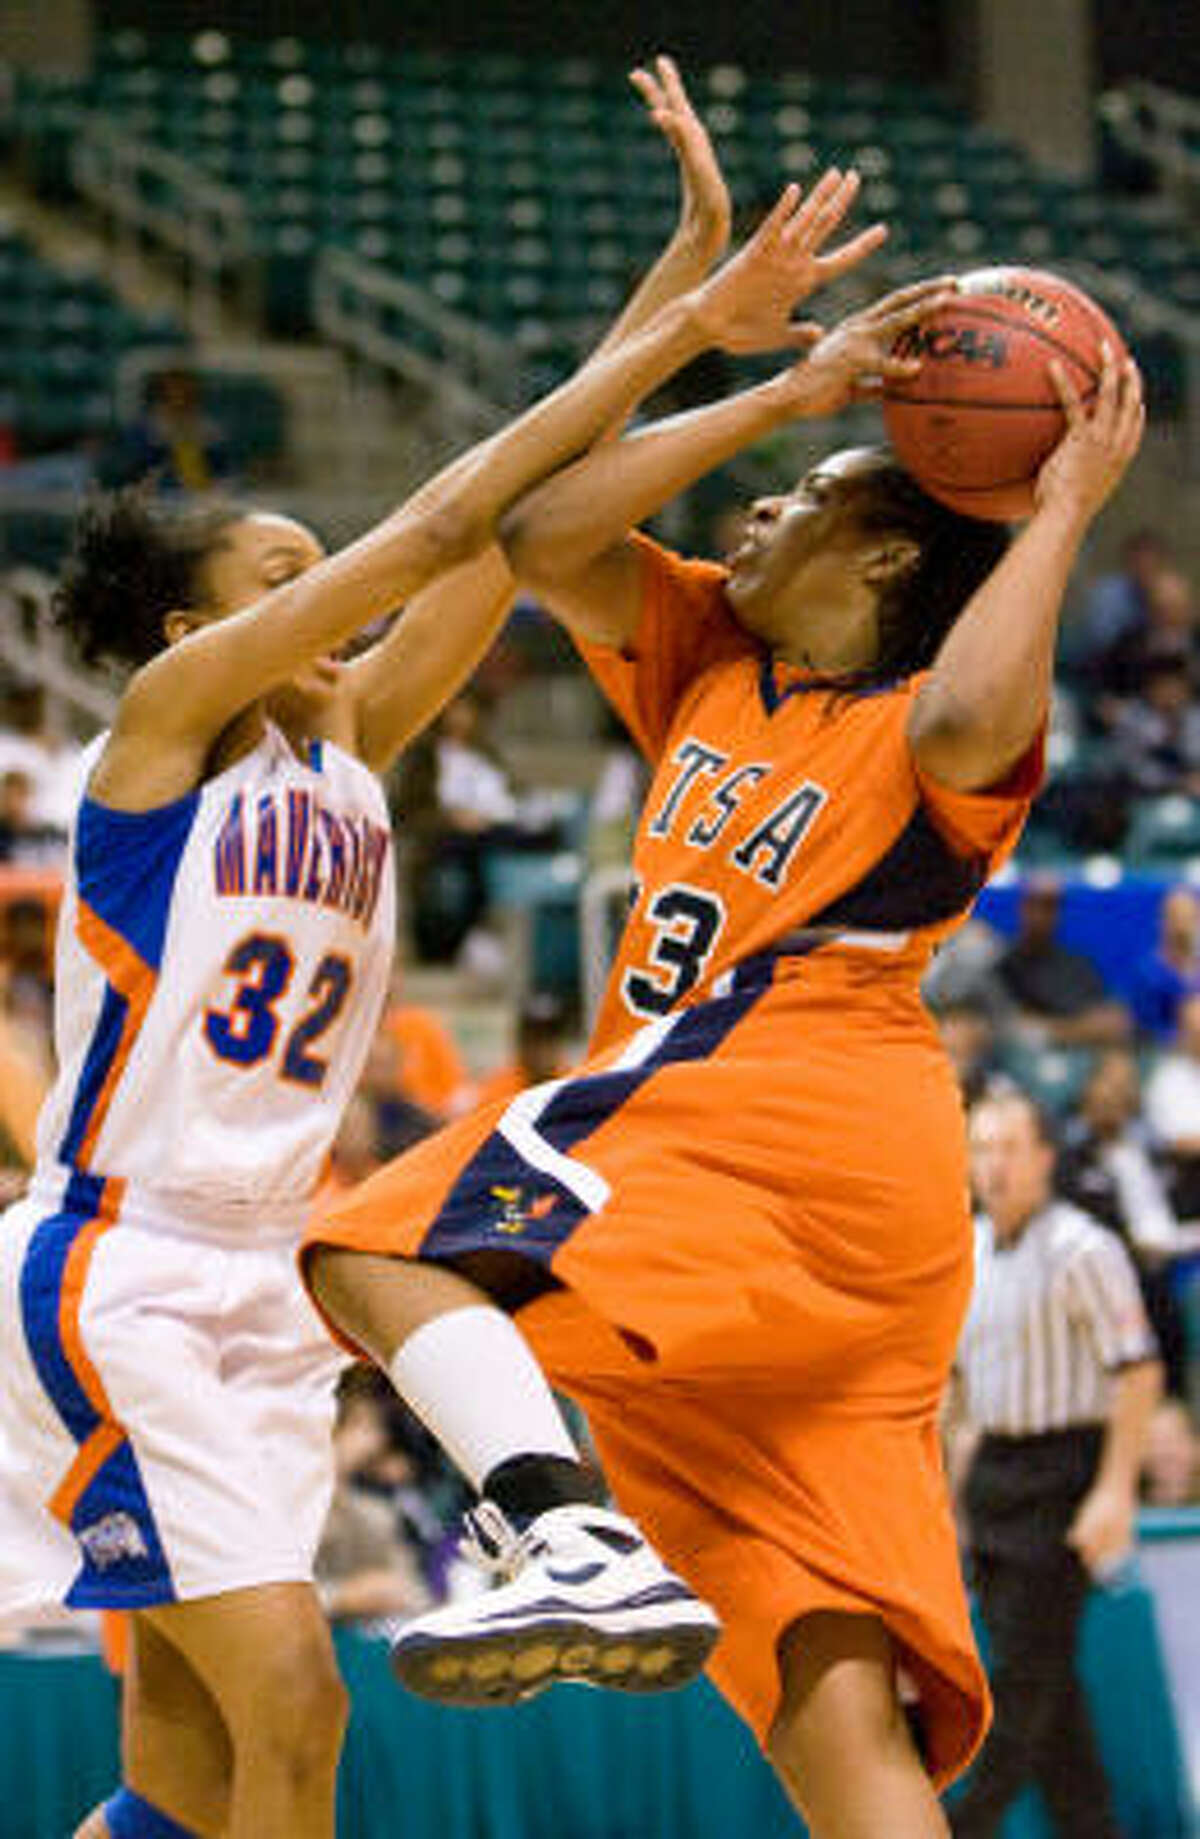 UTSA's Monica Gibbs (right) goes up for a shot against UT Arlington's Shalyn Martin in the second half. UTSA defeated UT Arlington 74-63 in the finals of the Southland Conference Tournament.